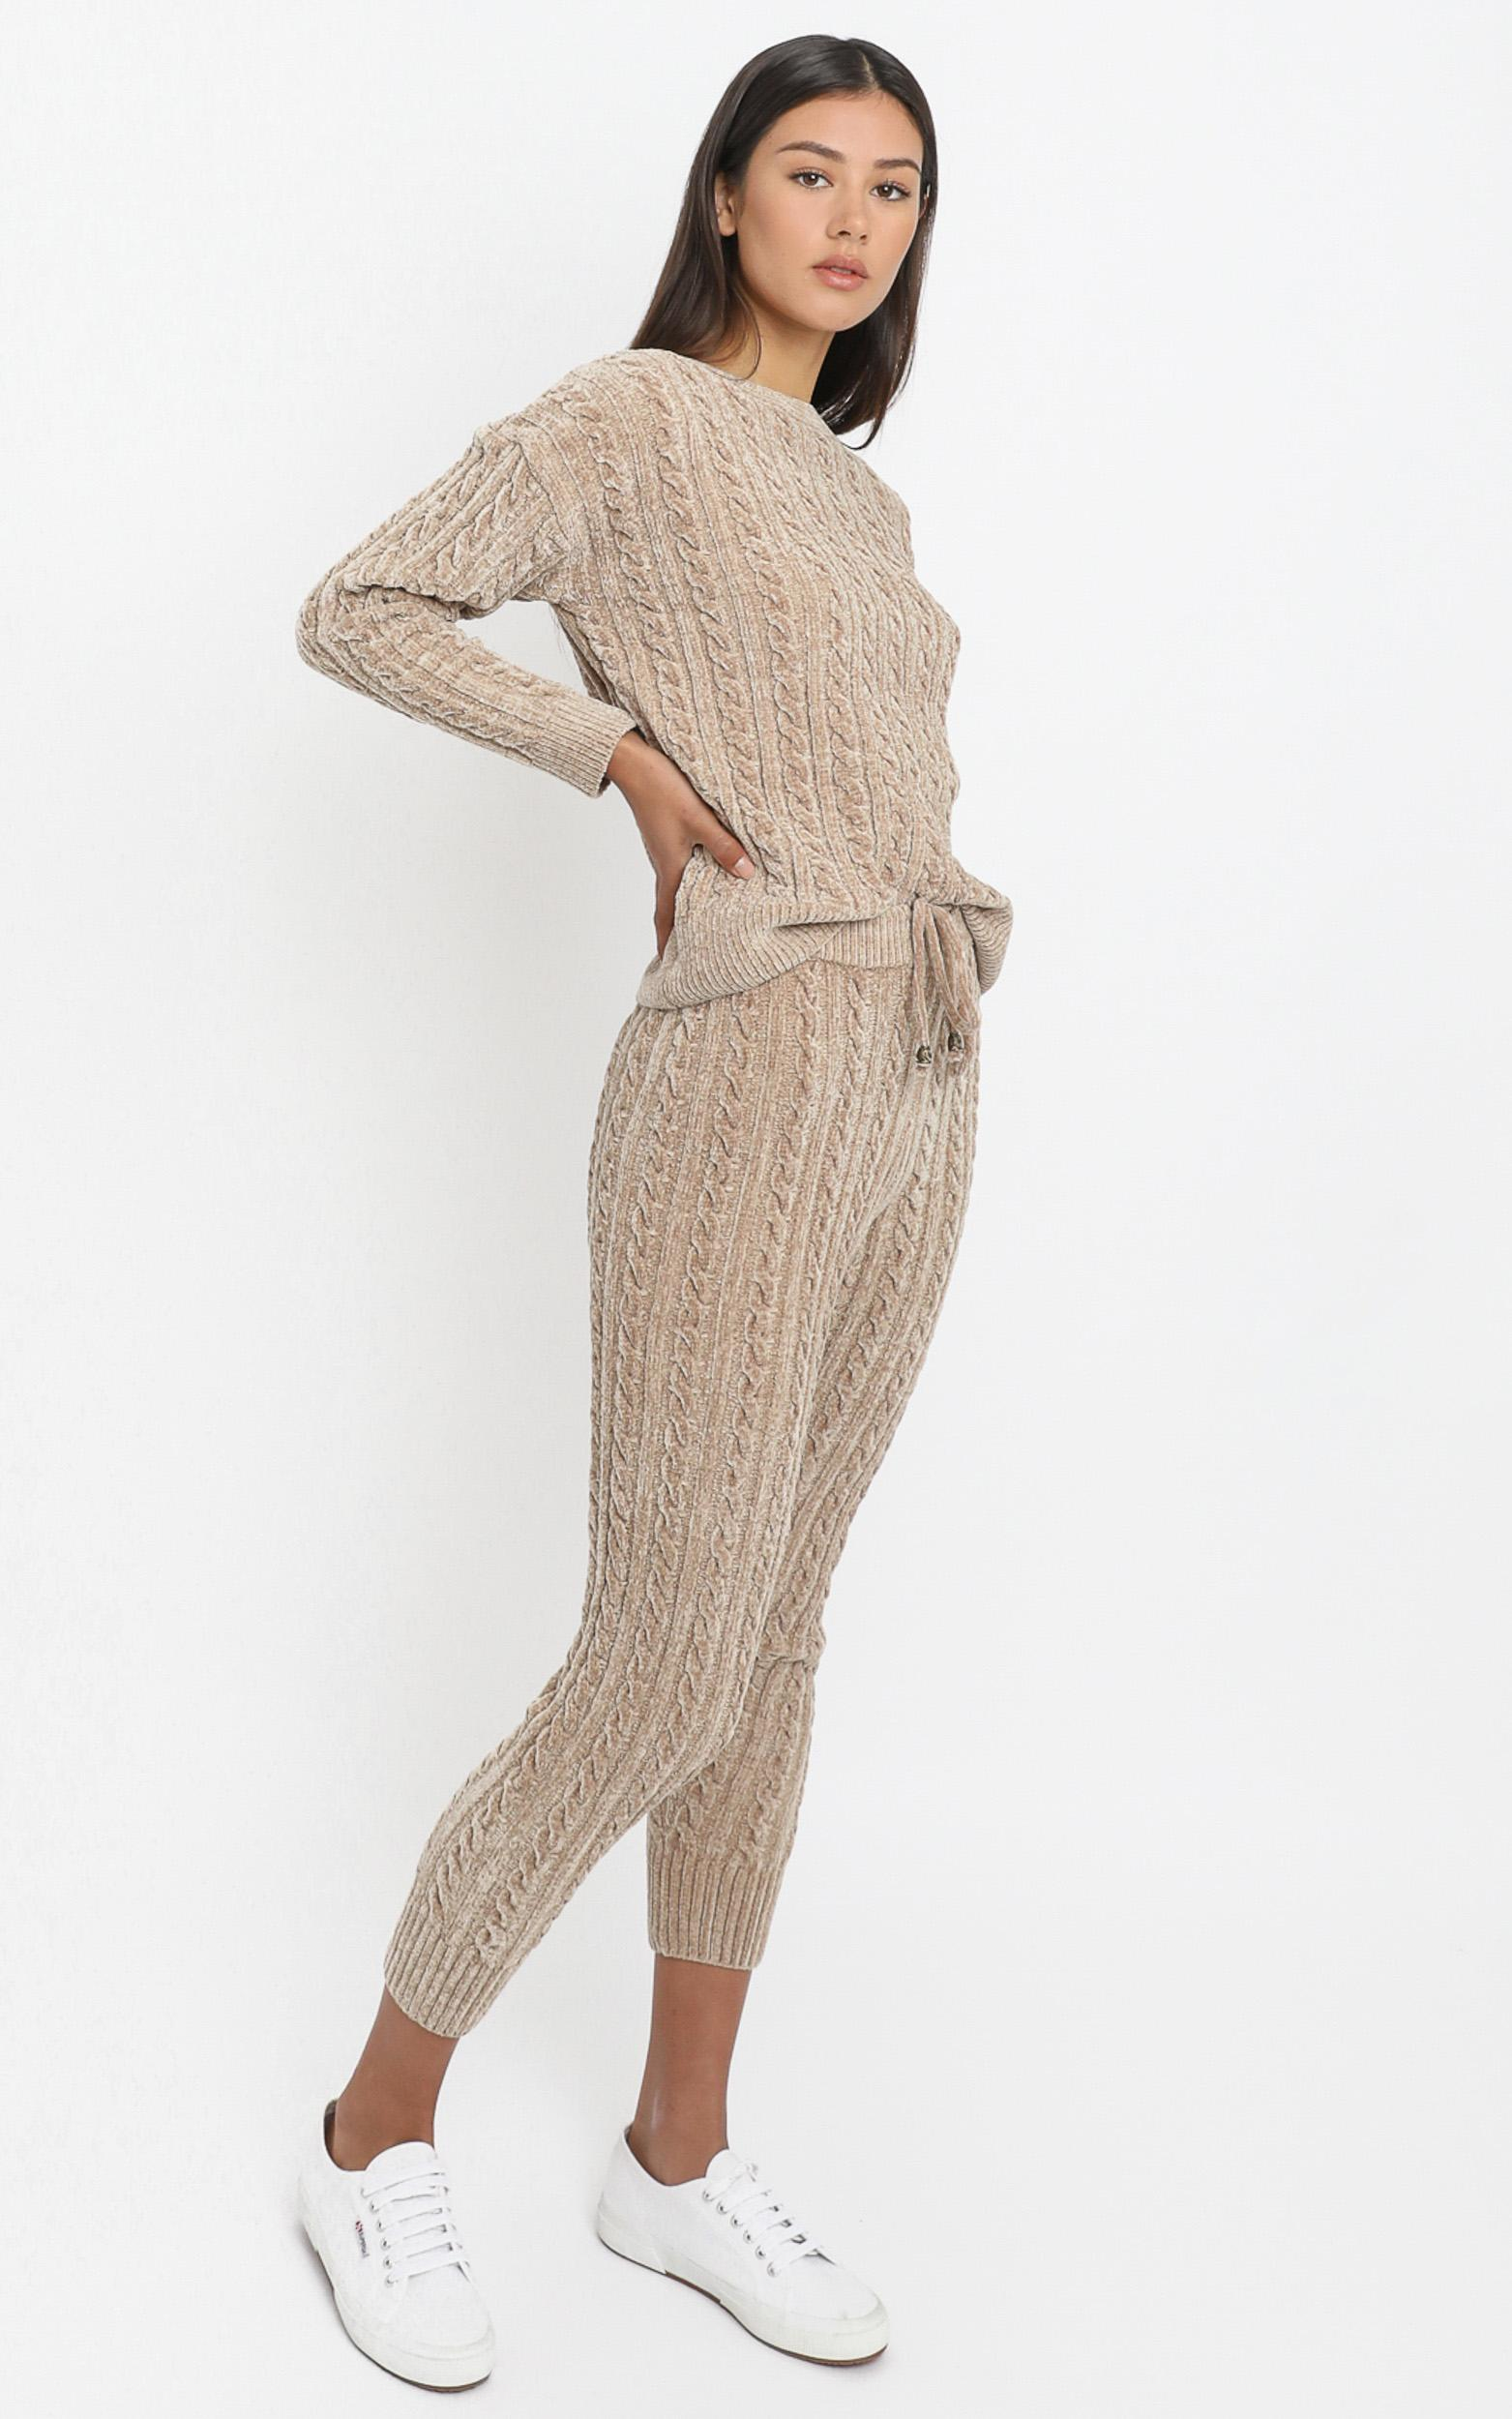 Iona Cable Knit Two Piece Set in Mocha - S, Mocha, hi-res image number null